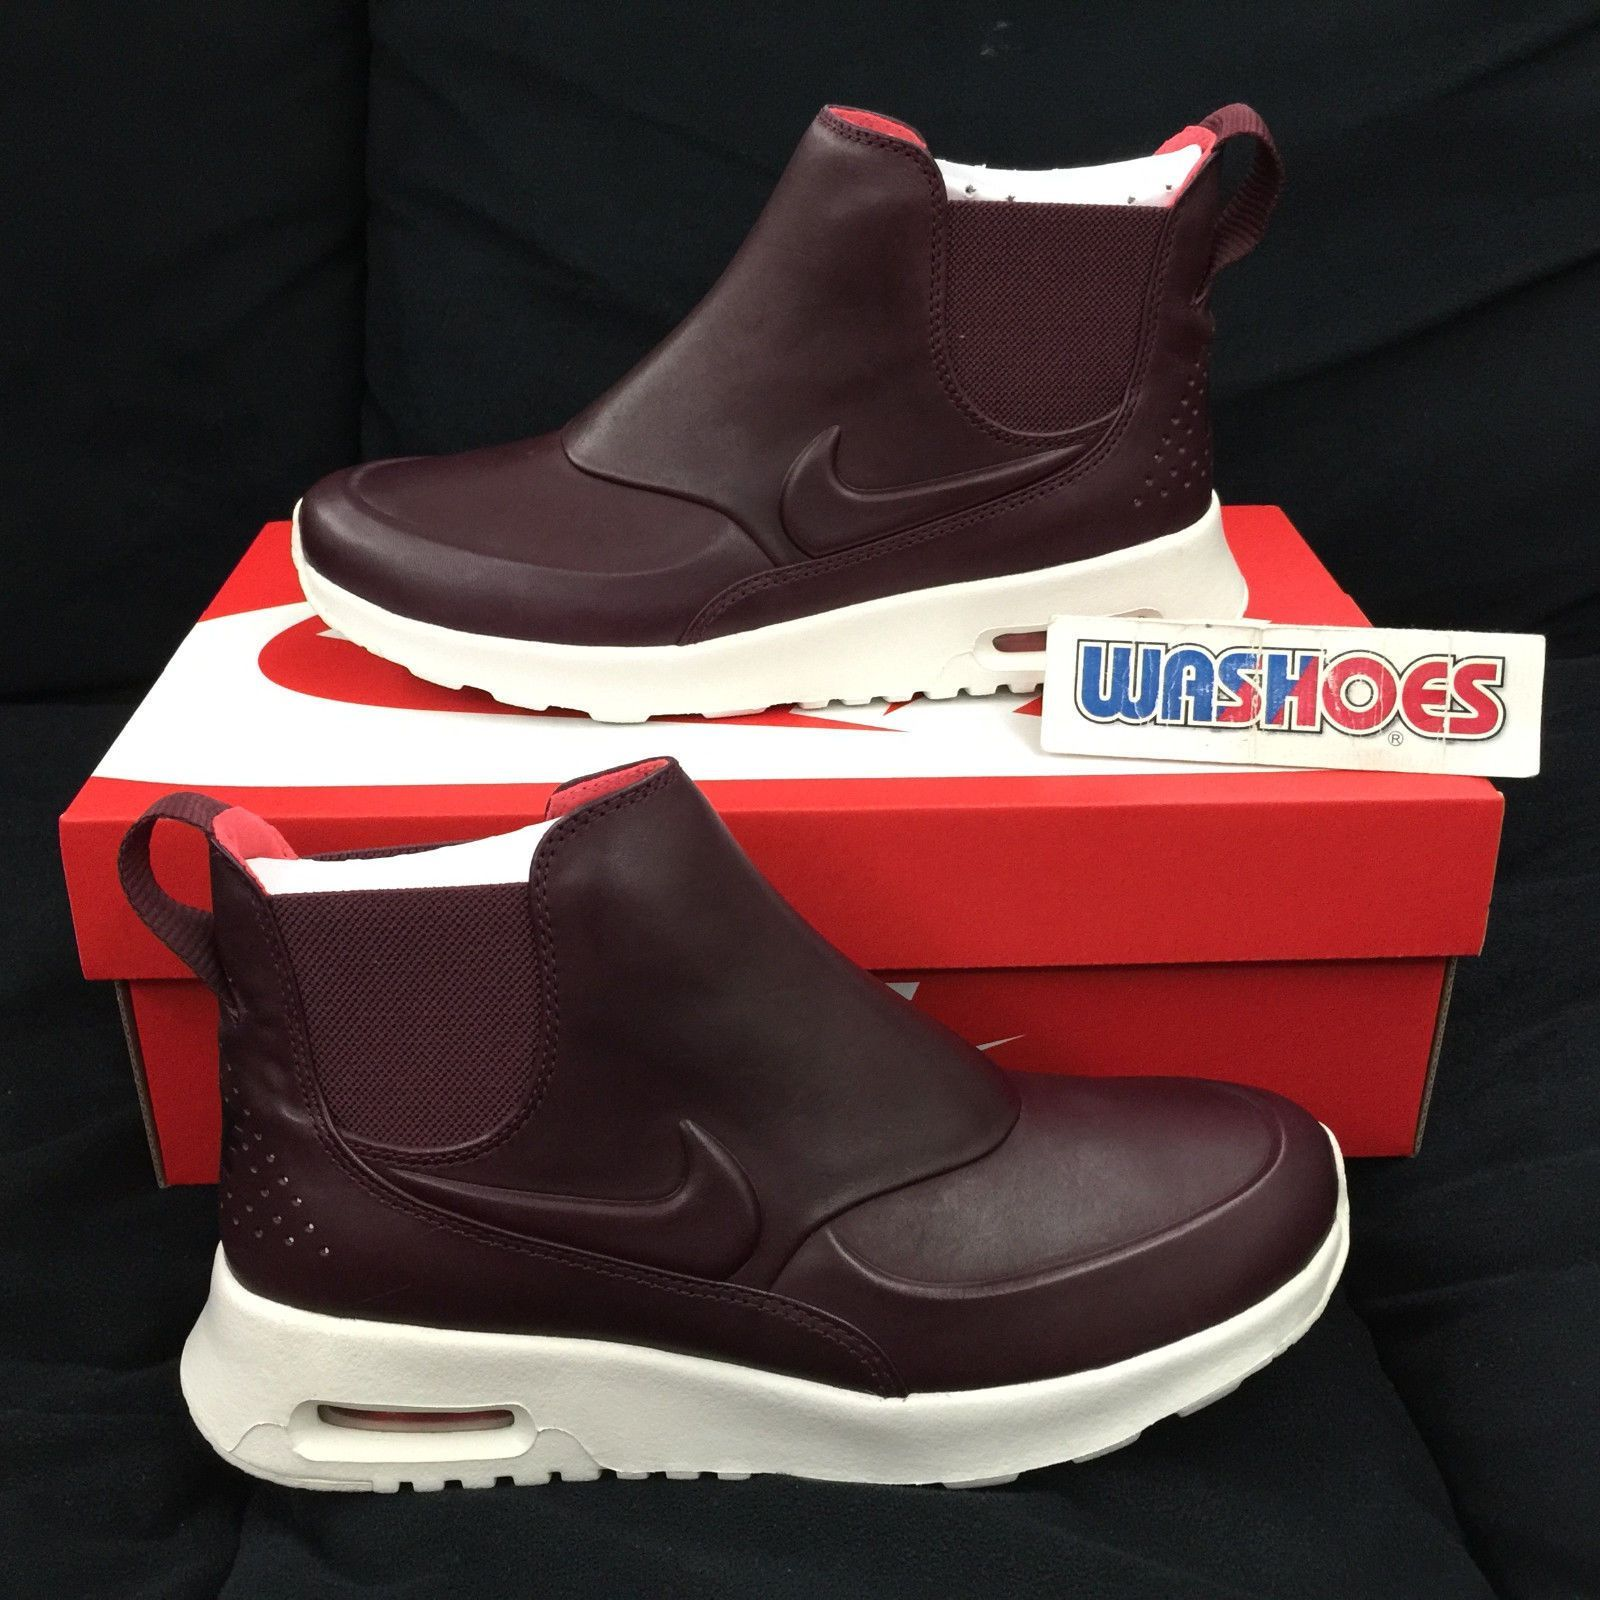 Discount Fashion Sneakers Wmns Nike Air Max Thea Mid Night